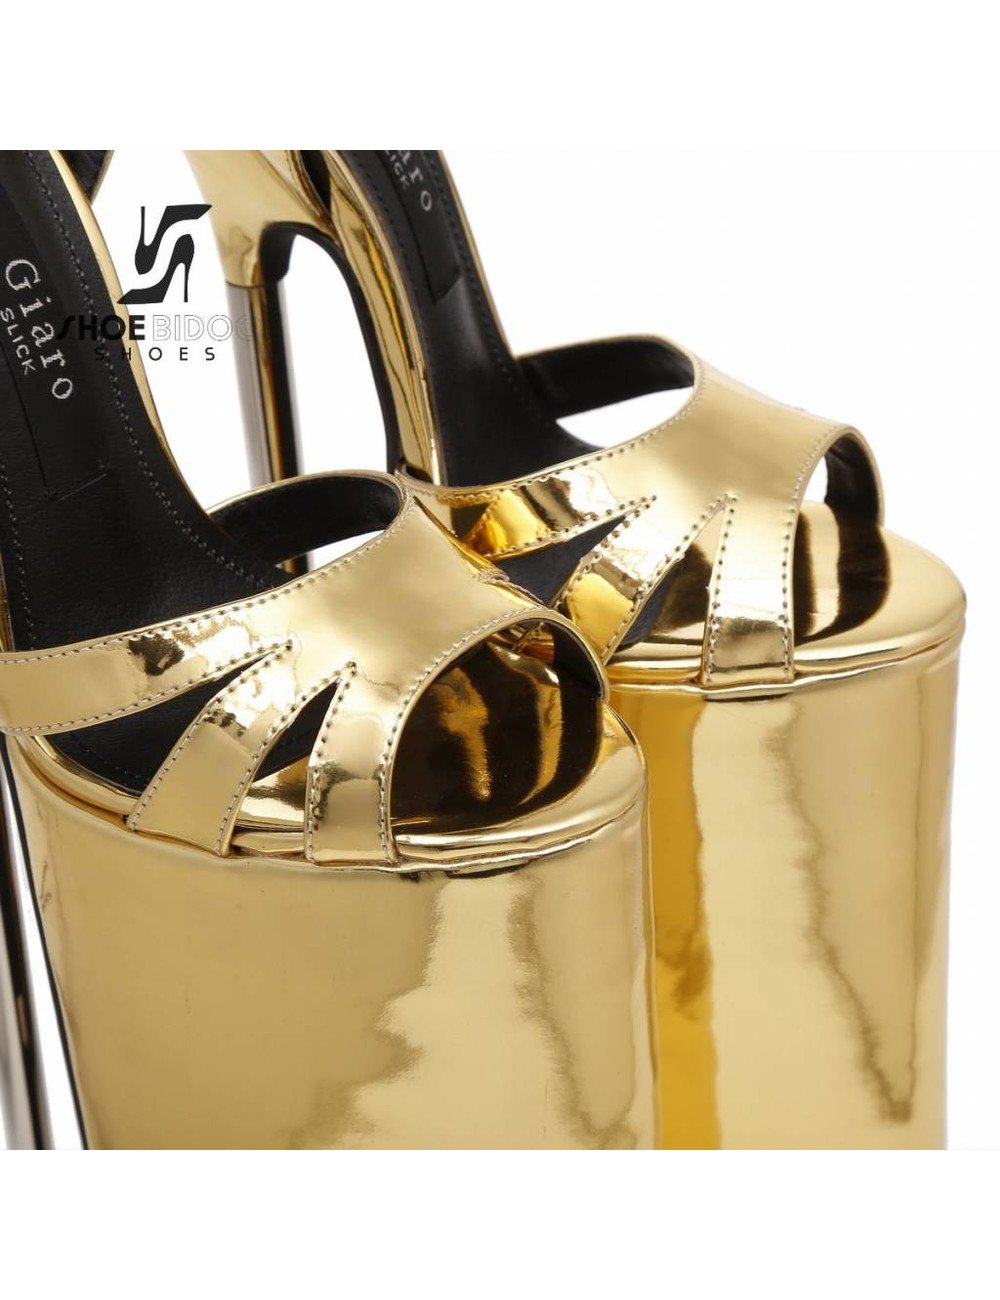 Giaro Gold patent fetish monster sandals with ultra high silver metal heels